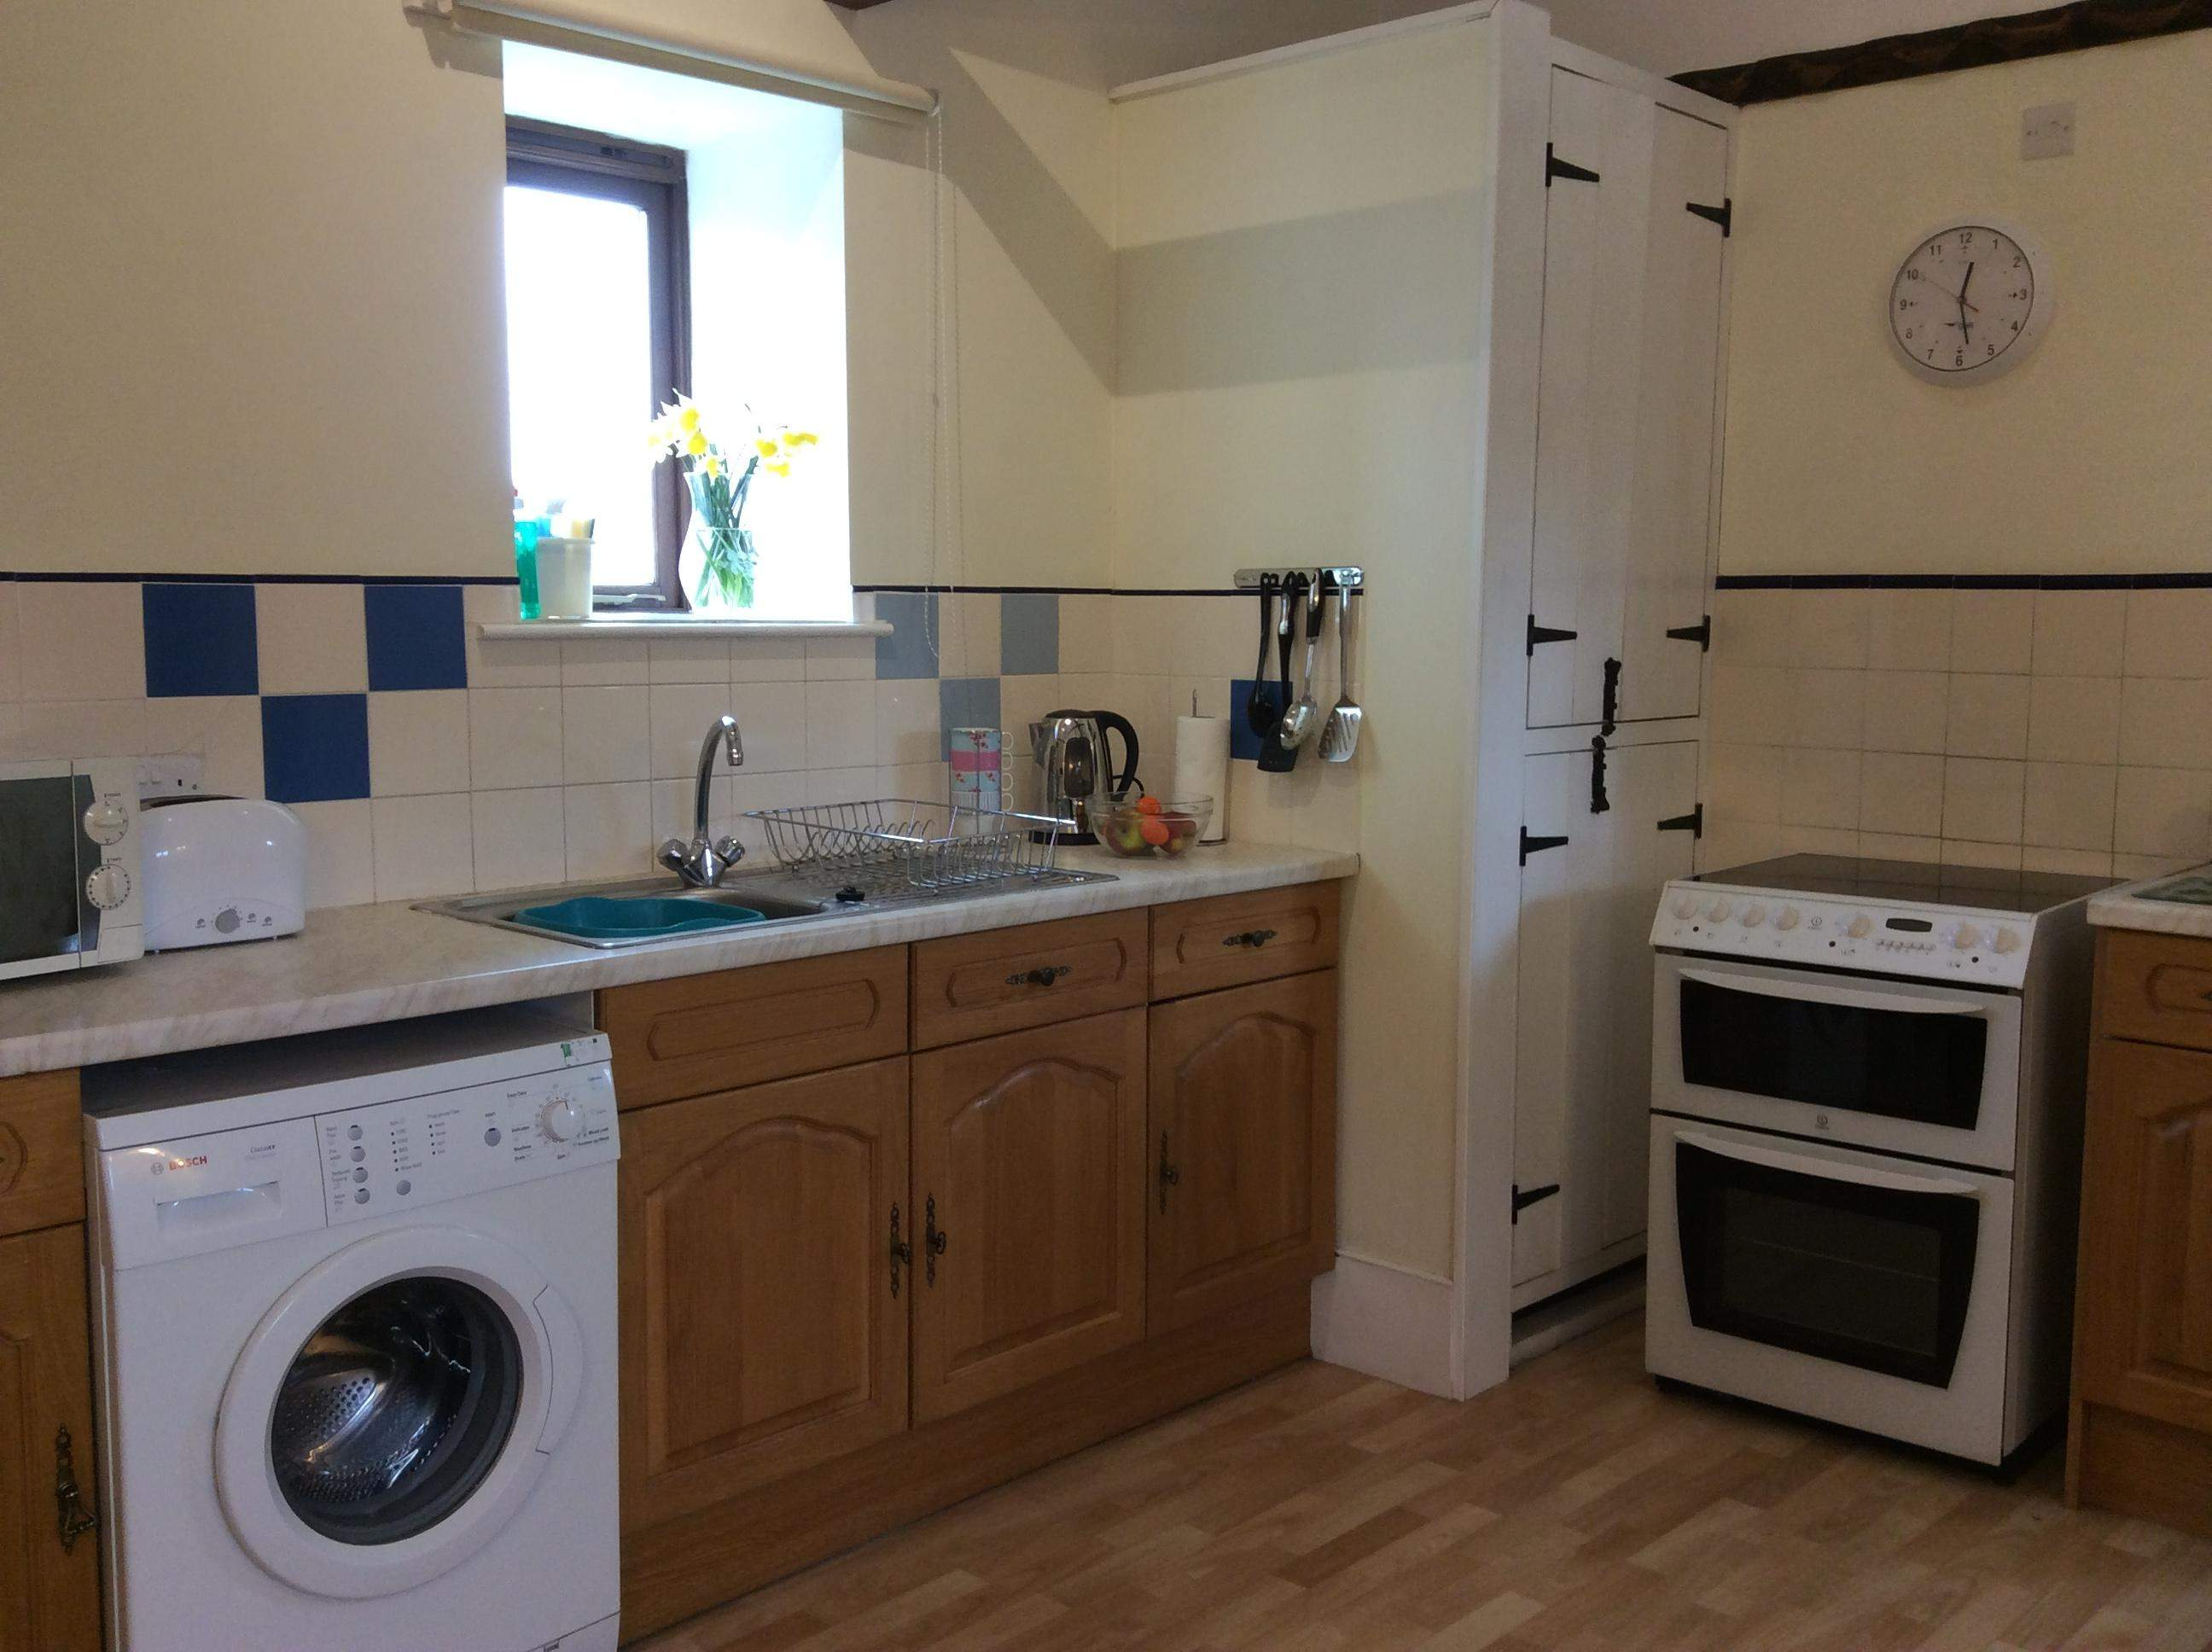 full size oven with ceramic hob and grill, microwave, full size fridge freezer, washing machine